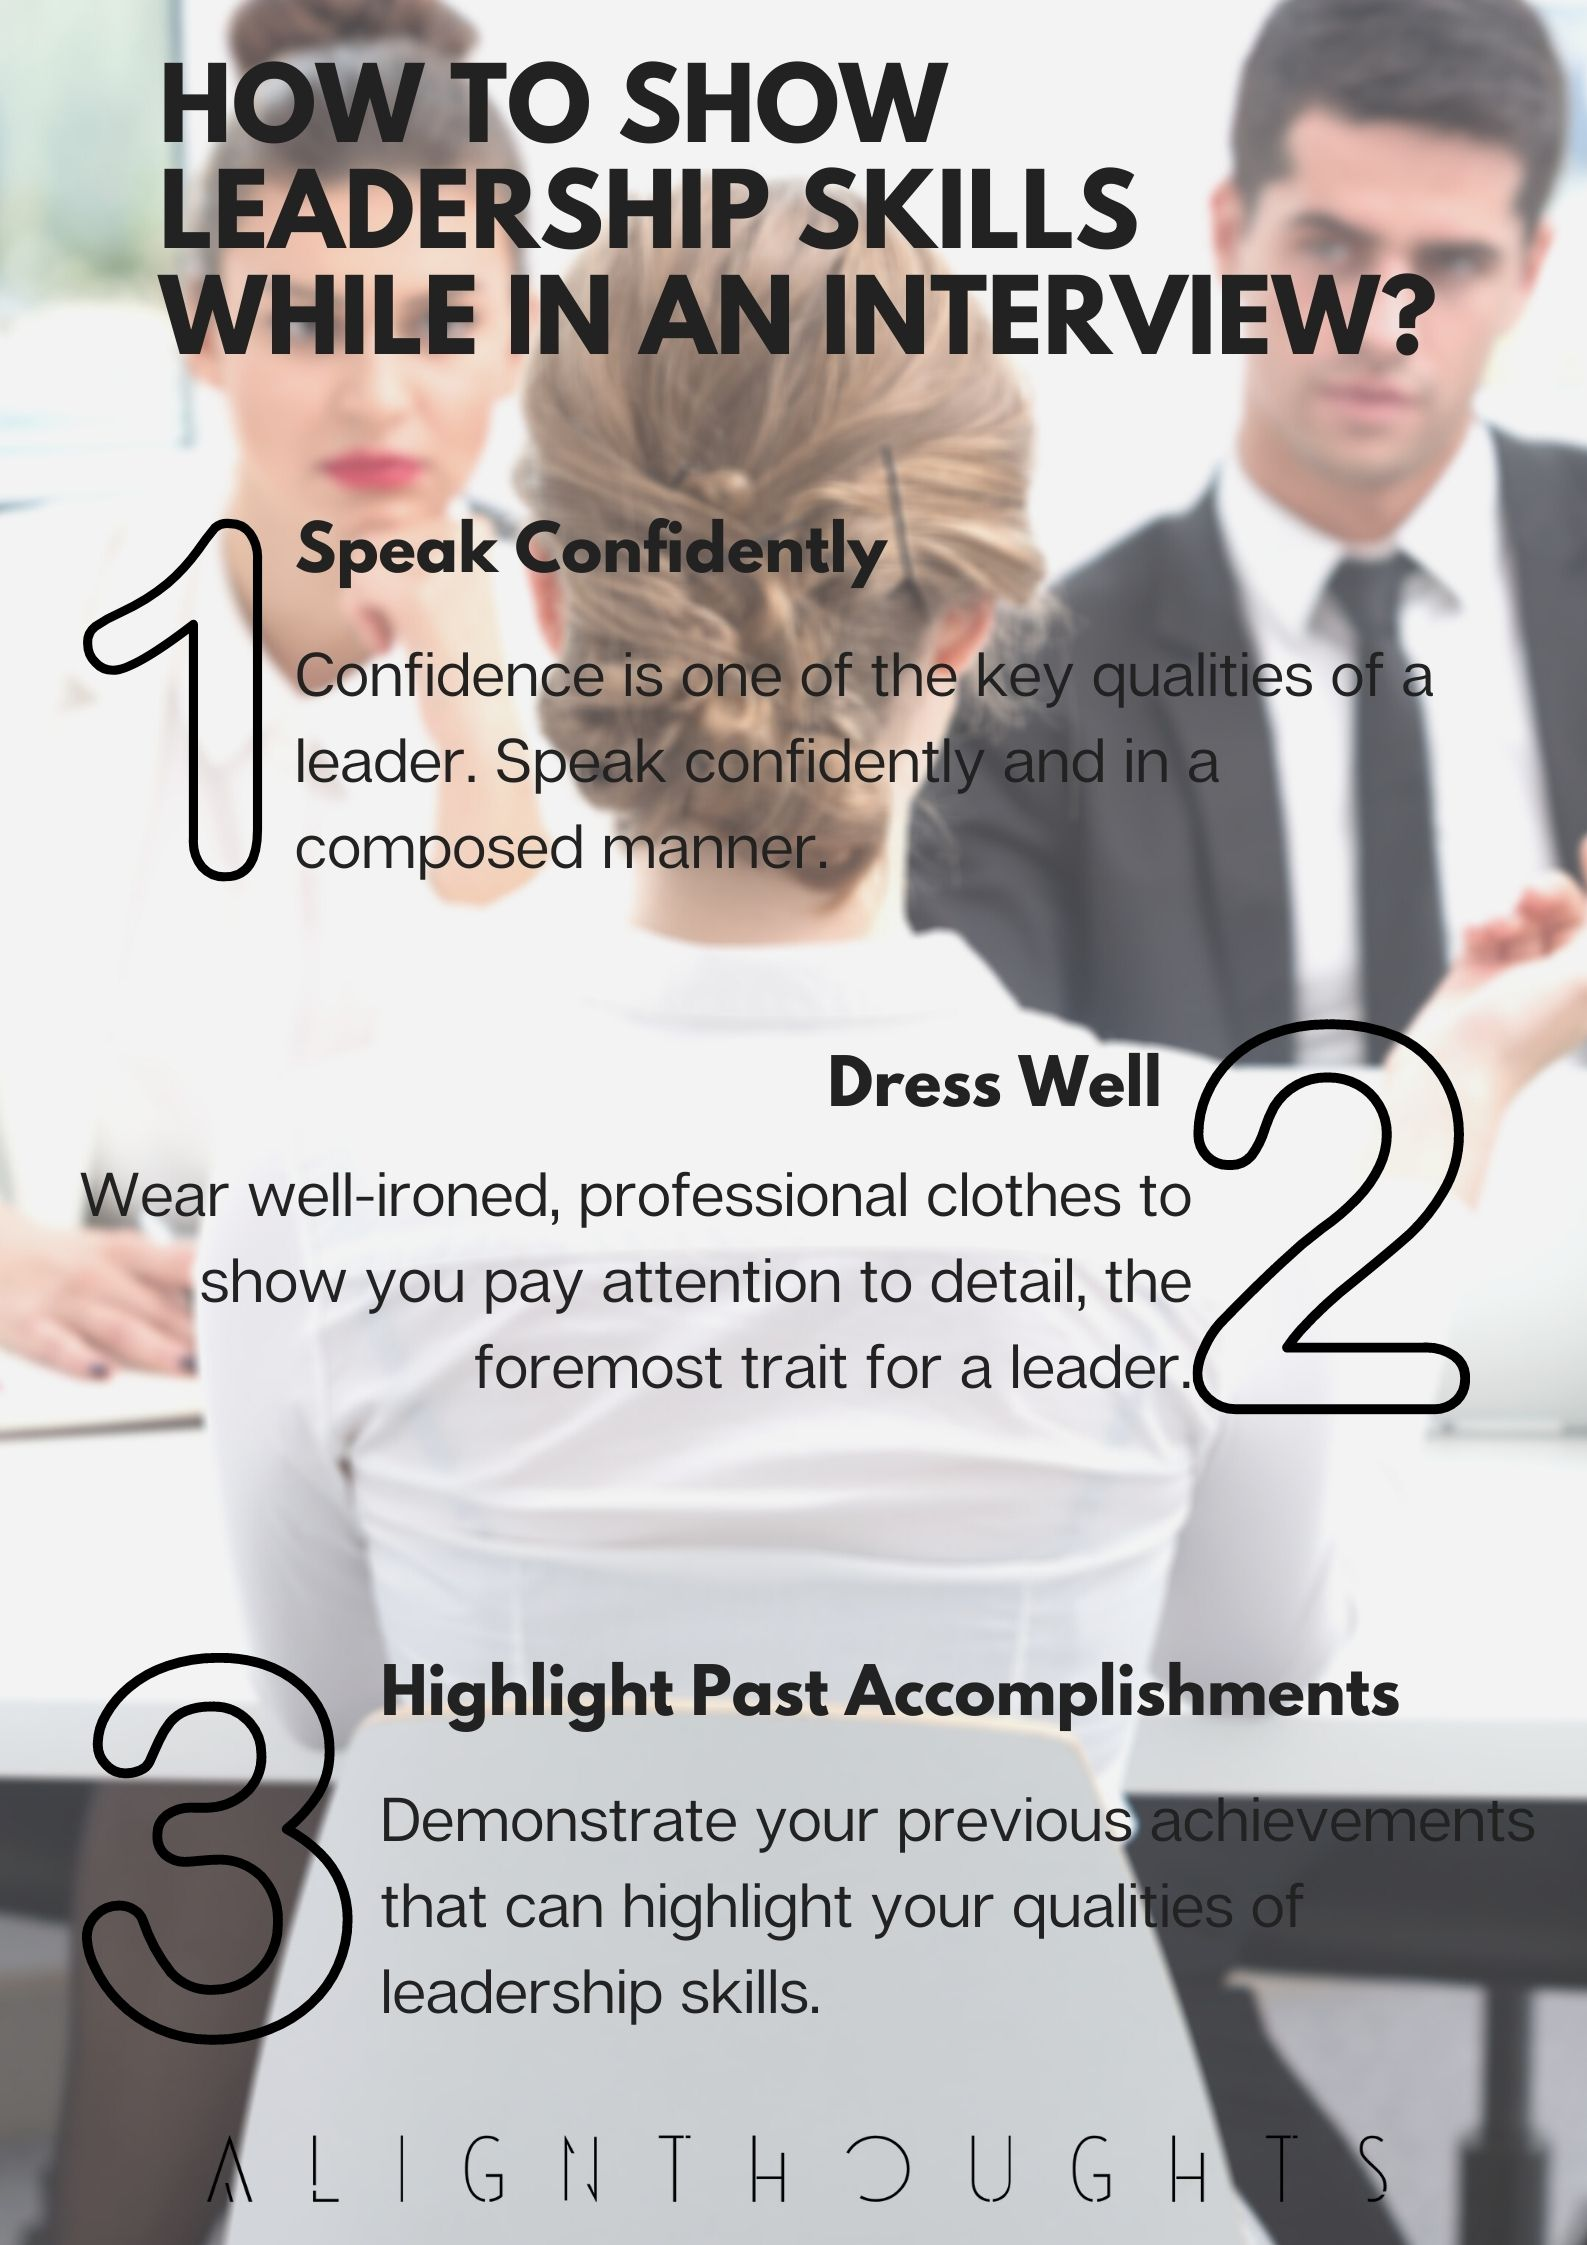 leadership skills examples for an interview-alignthoughts